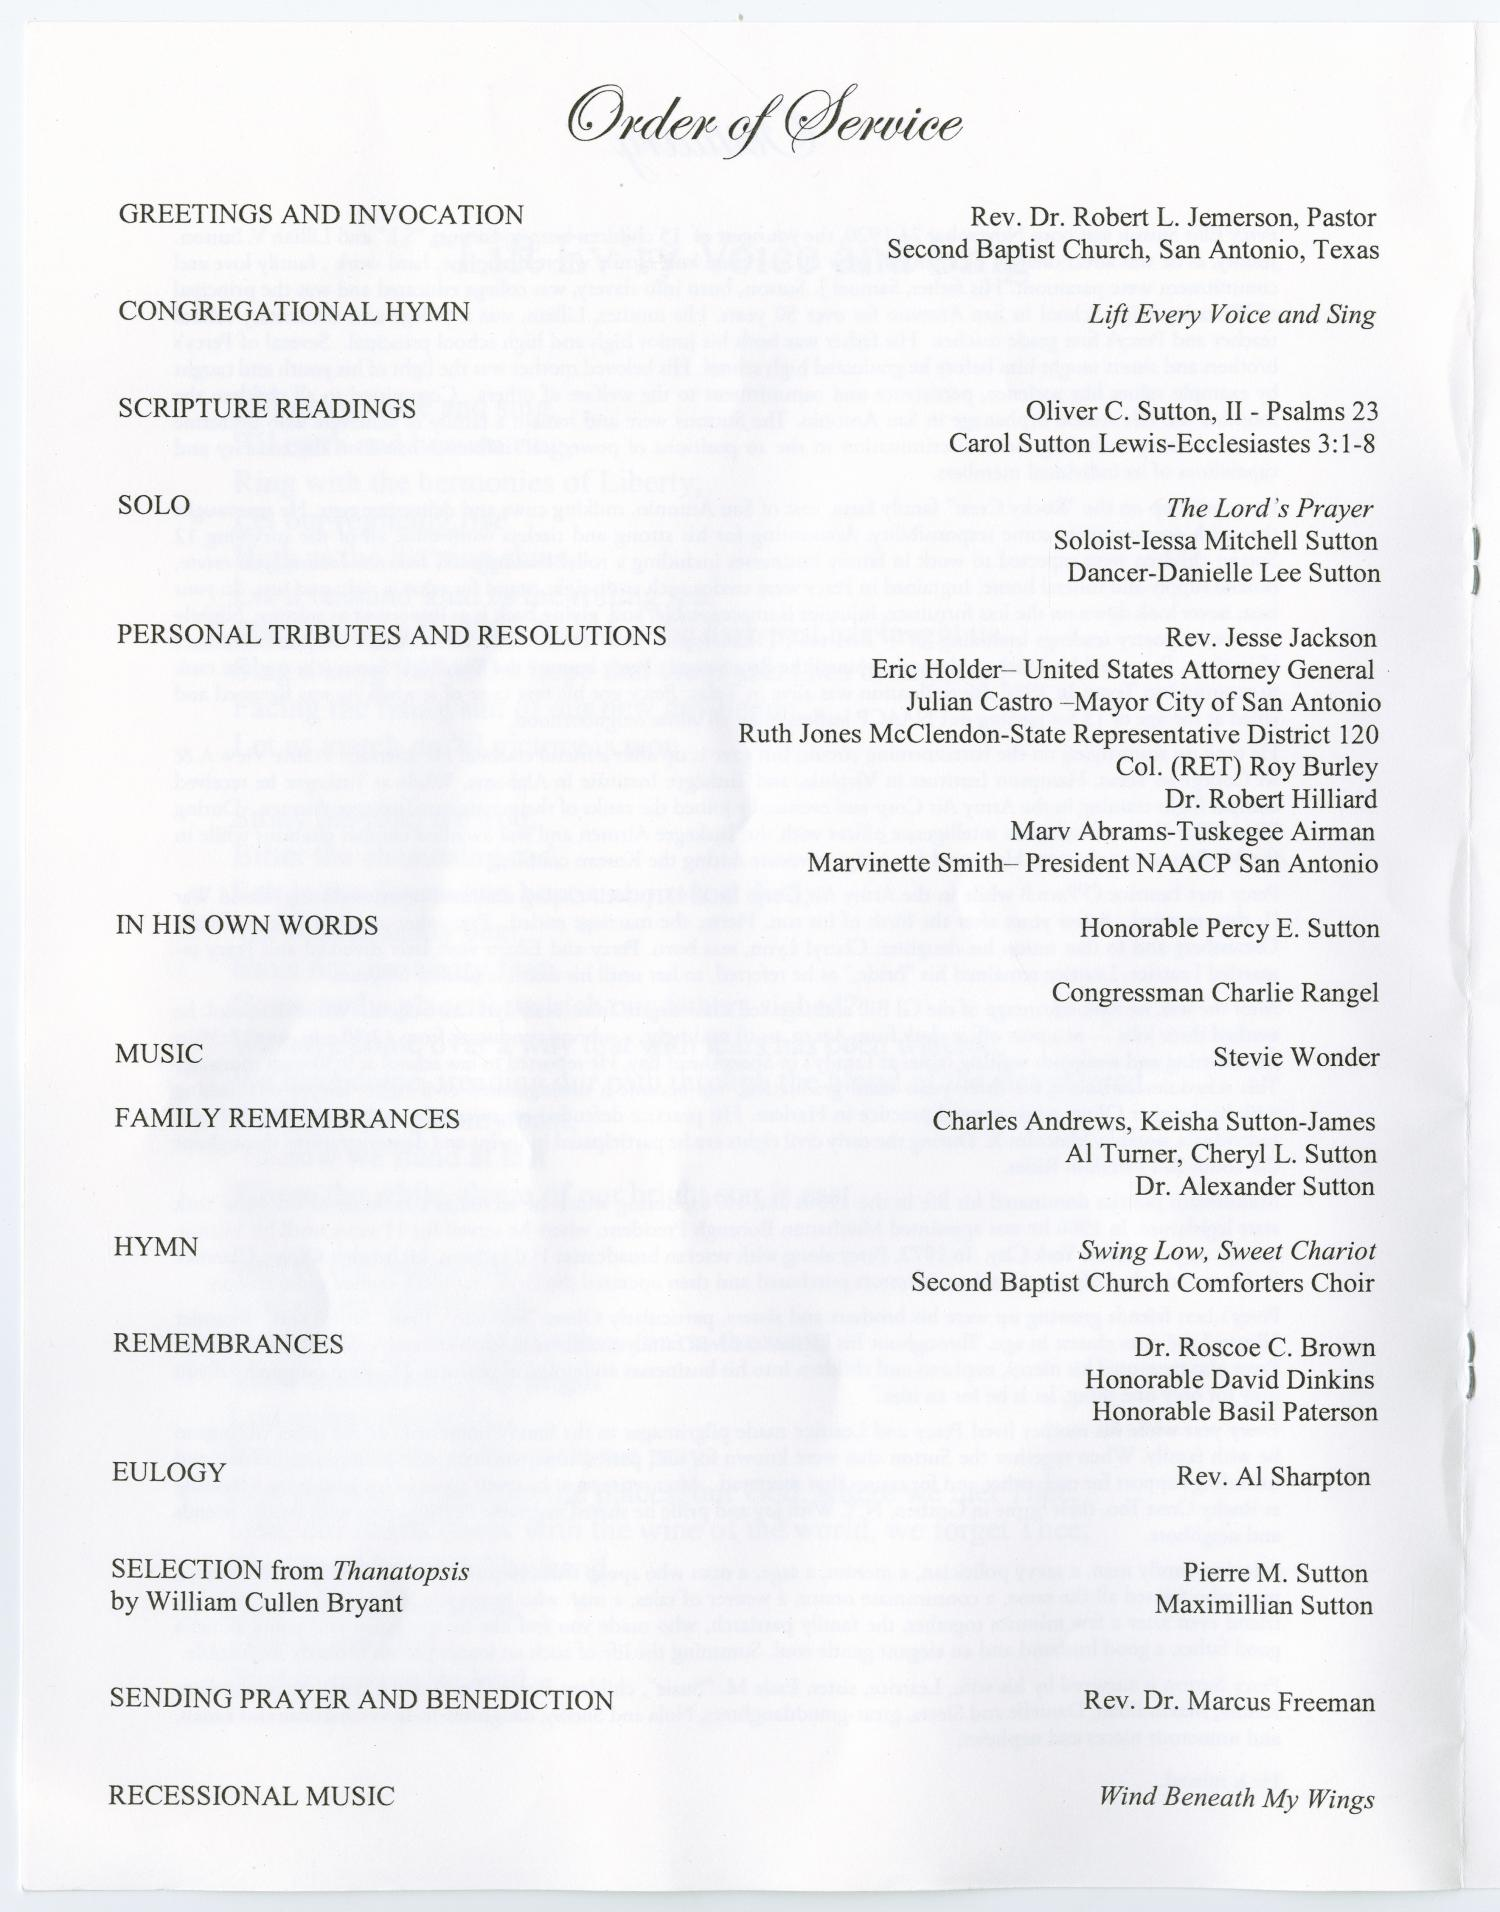 [Funeral Program for Percy Ellis Sutton, January 6, 2010